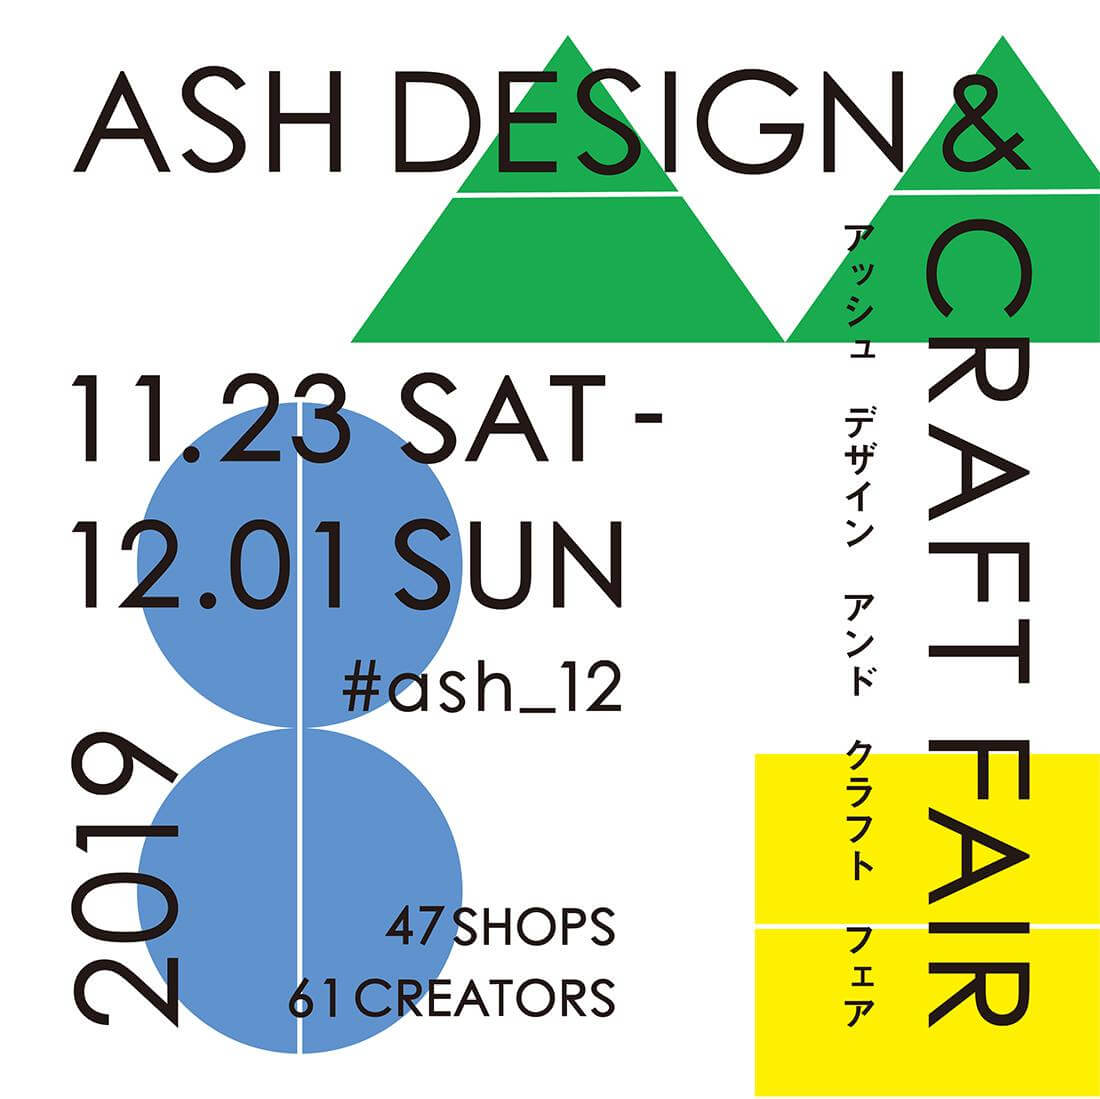 ash Design & Craft Fair 12